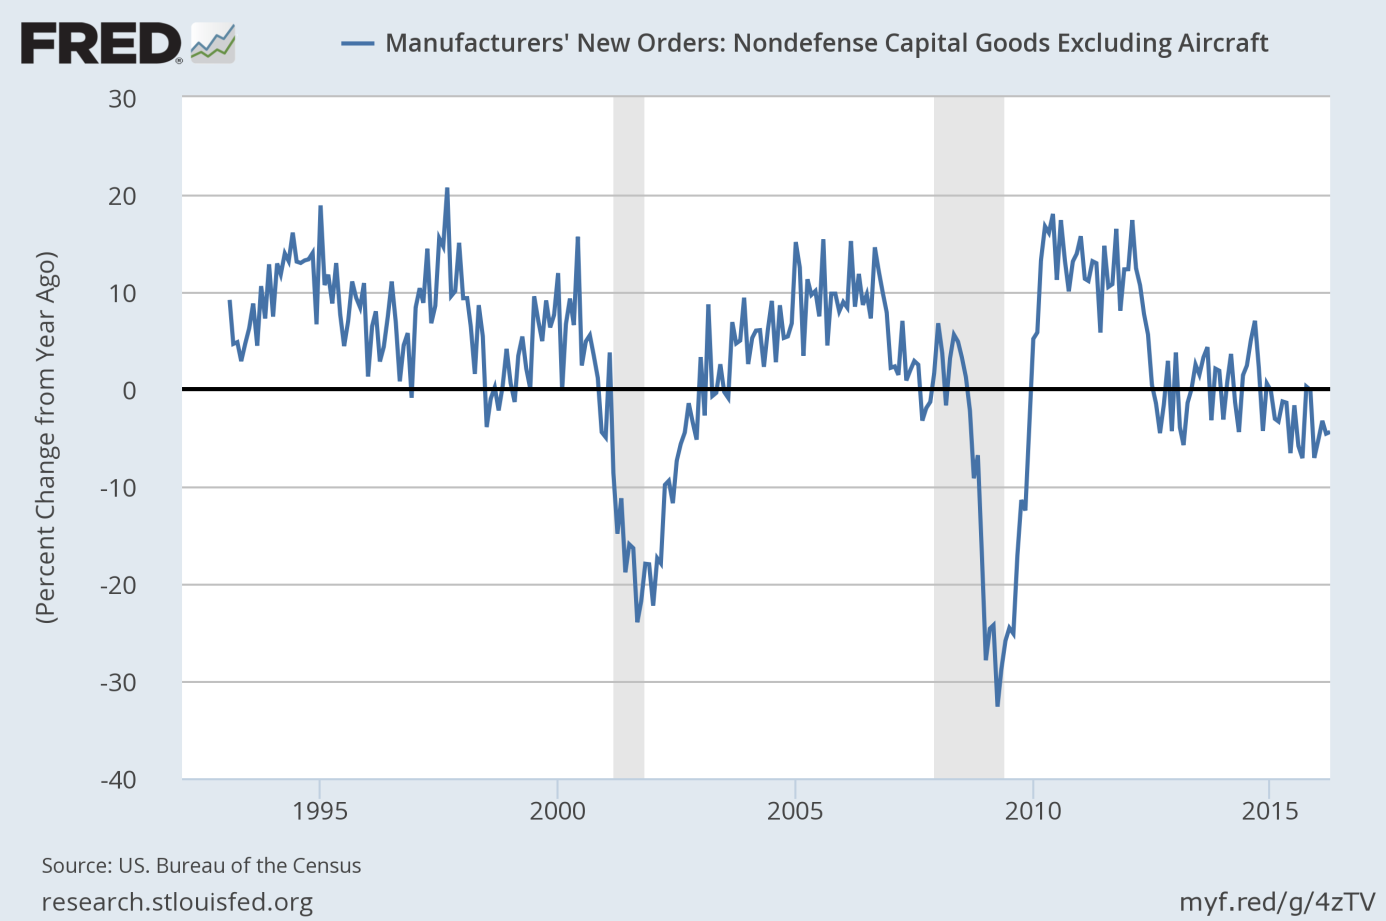 Manufacturers' new orders of nondefense capital goods